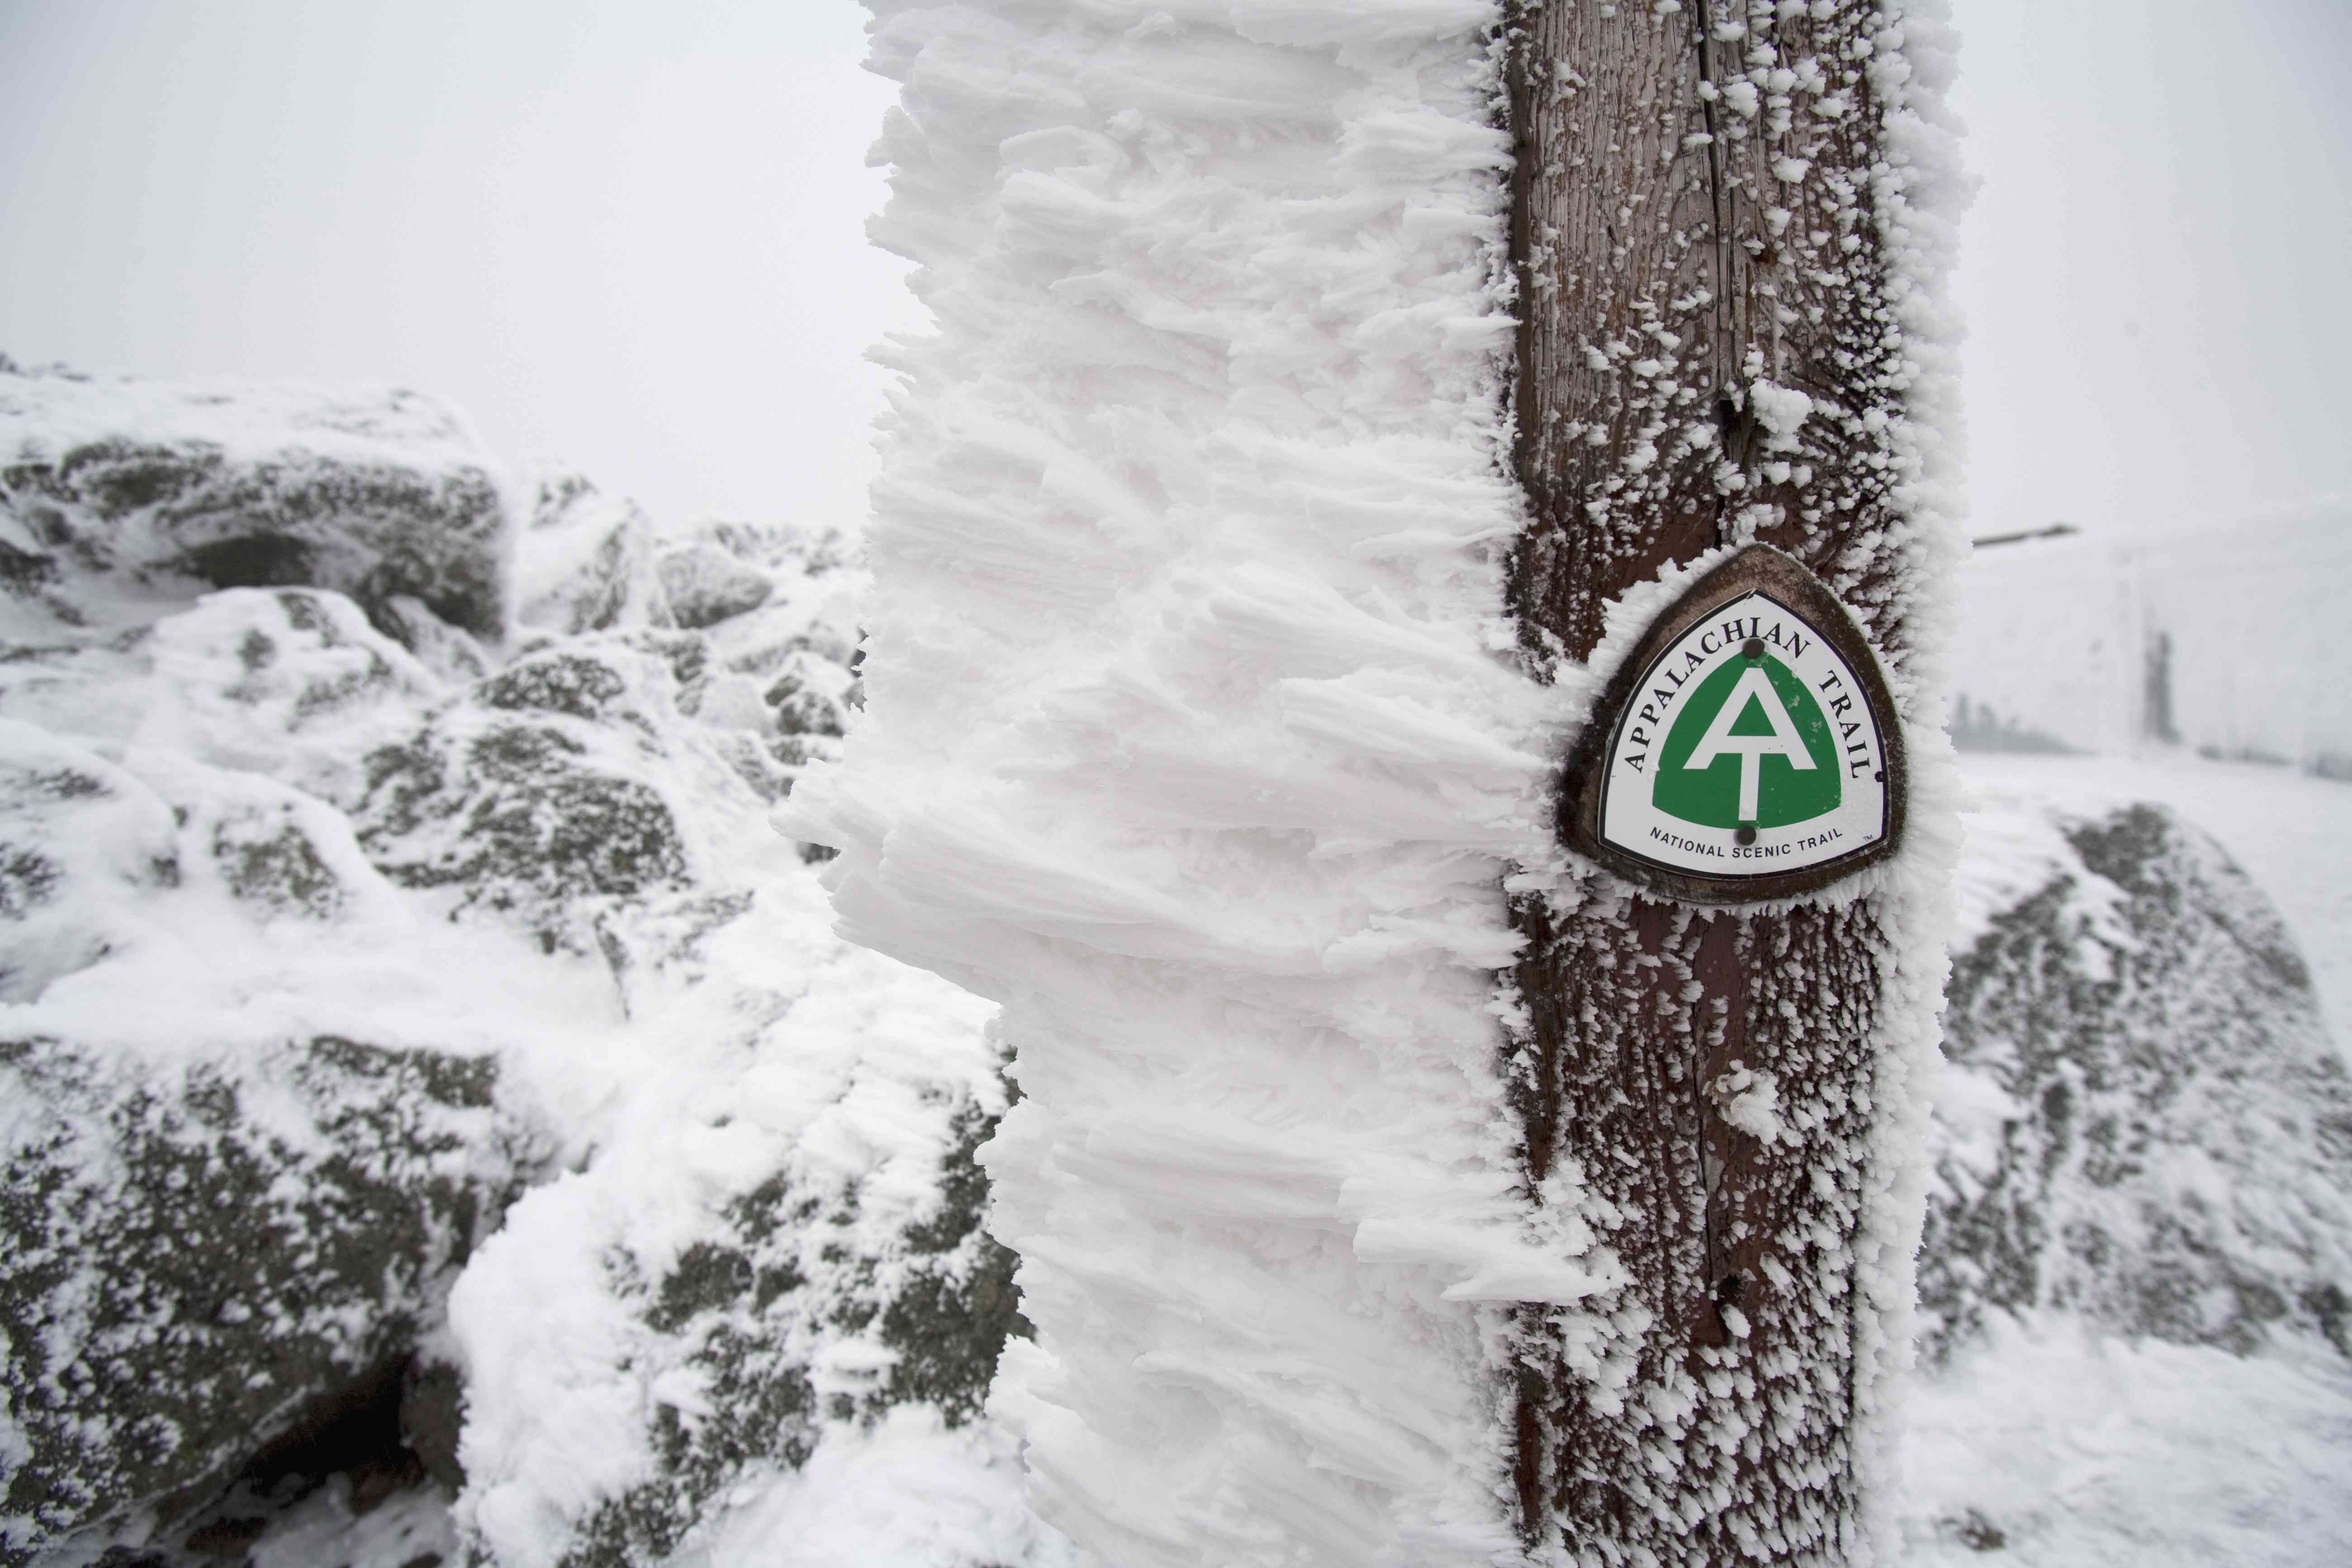 A small, green snow covered sign points to the Appalachian Trail in the White Mountains of New Hampshire